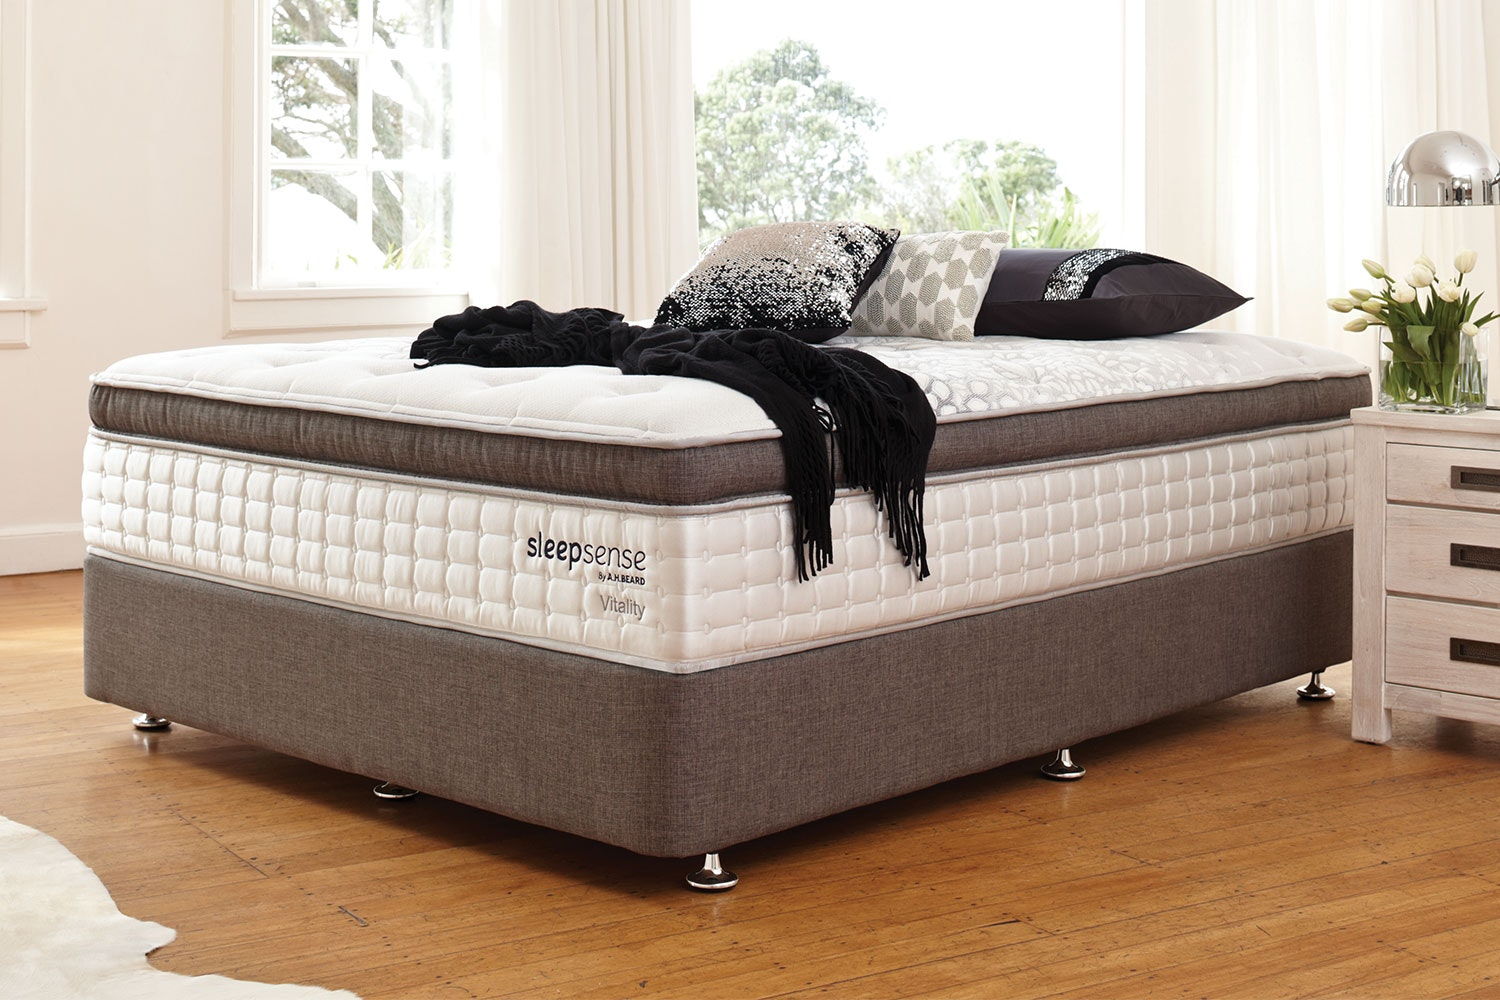 Vitality King Single Bed by Sleepsense